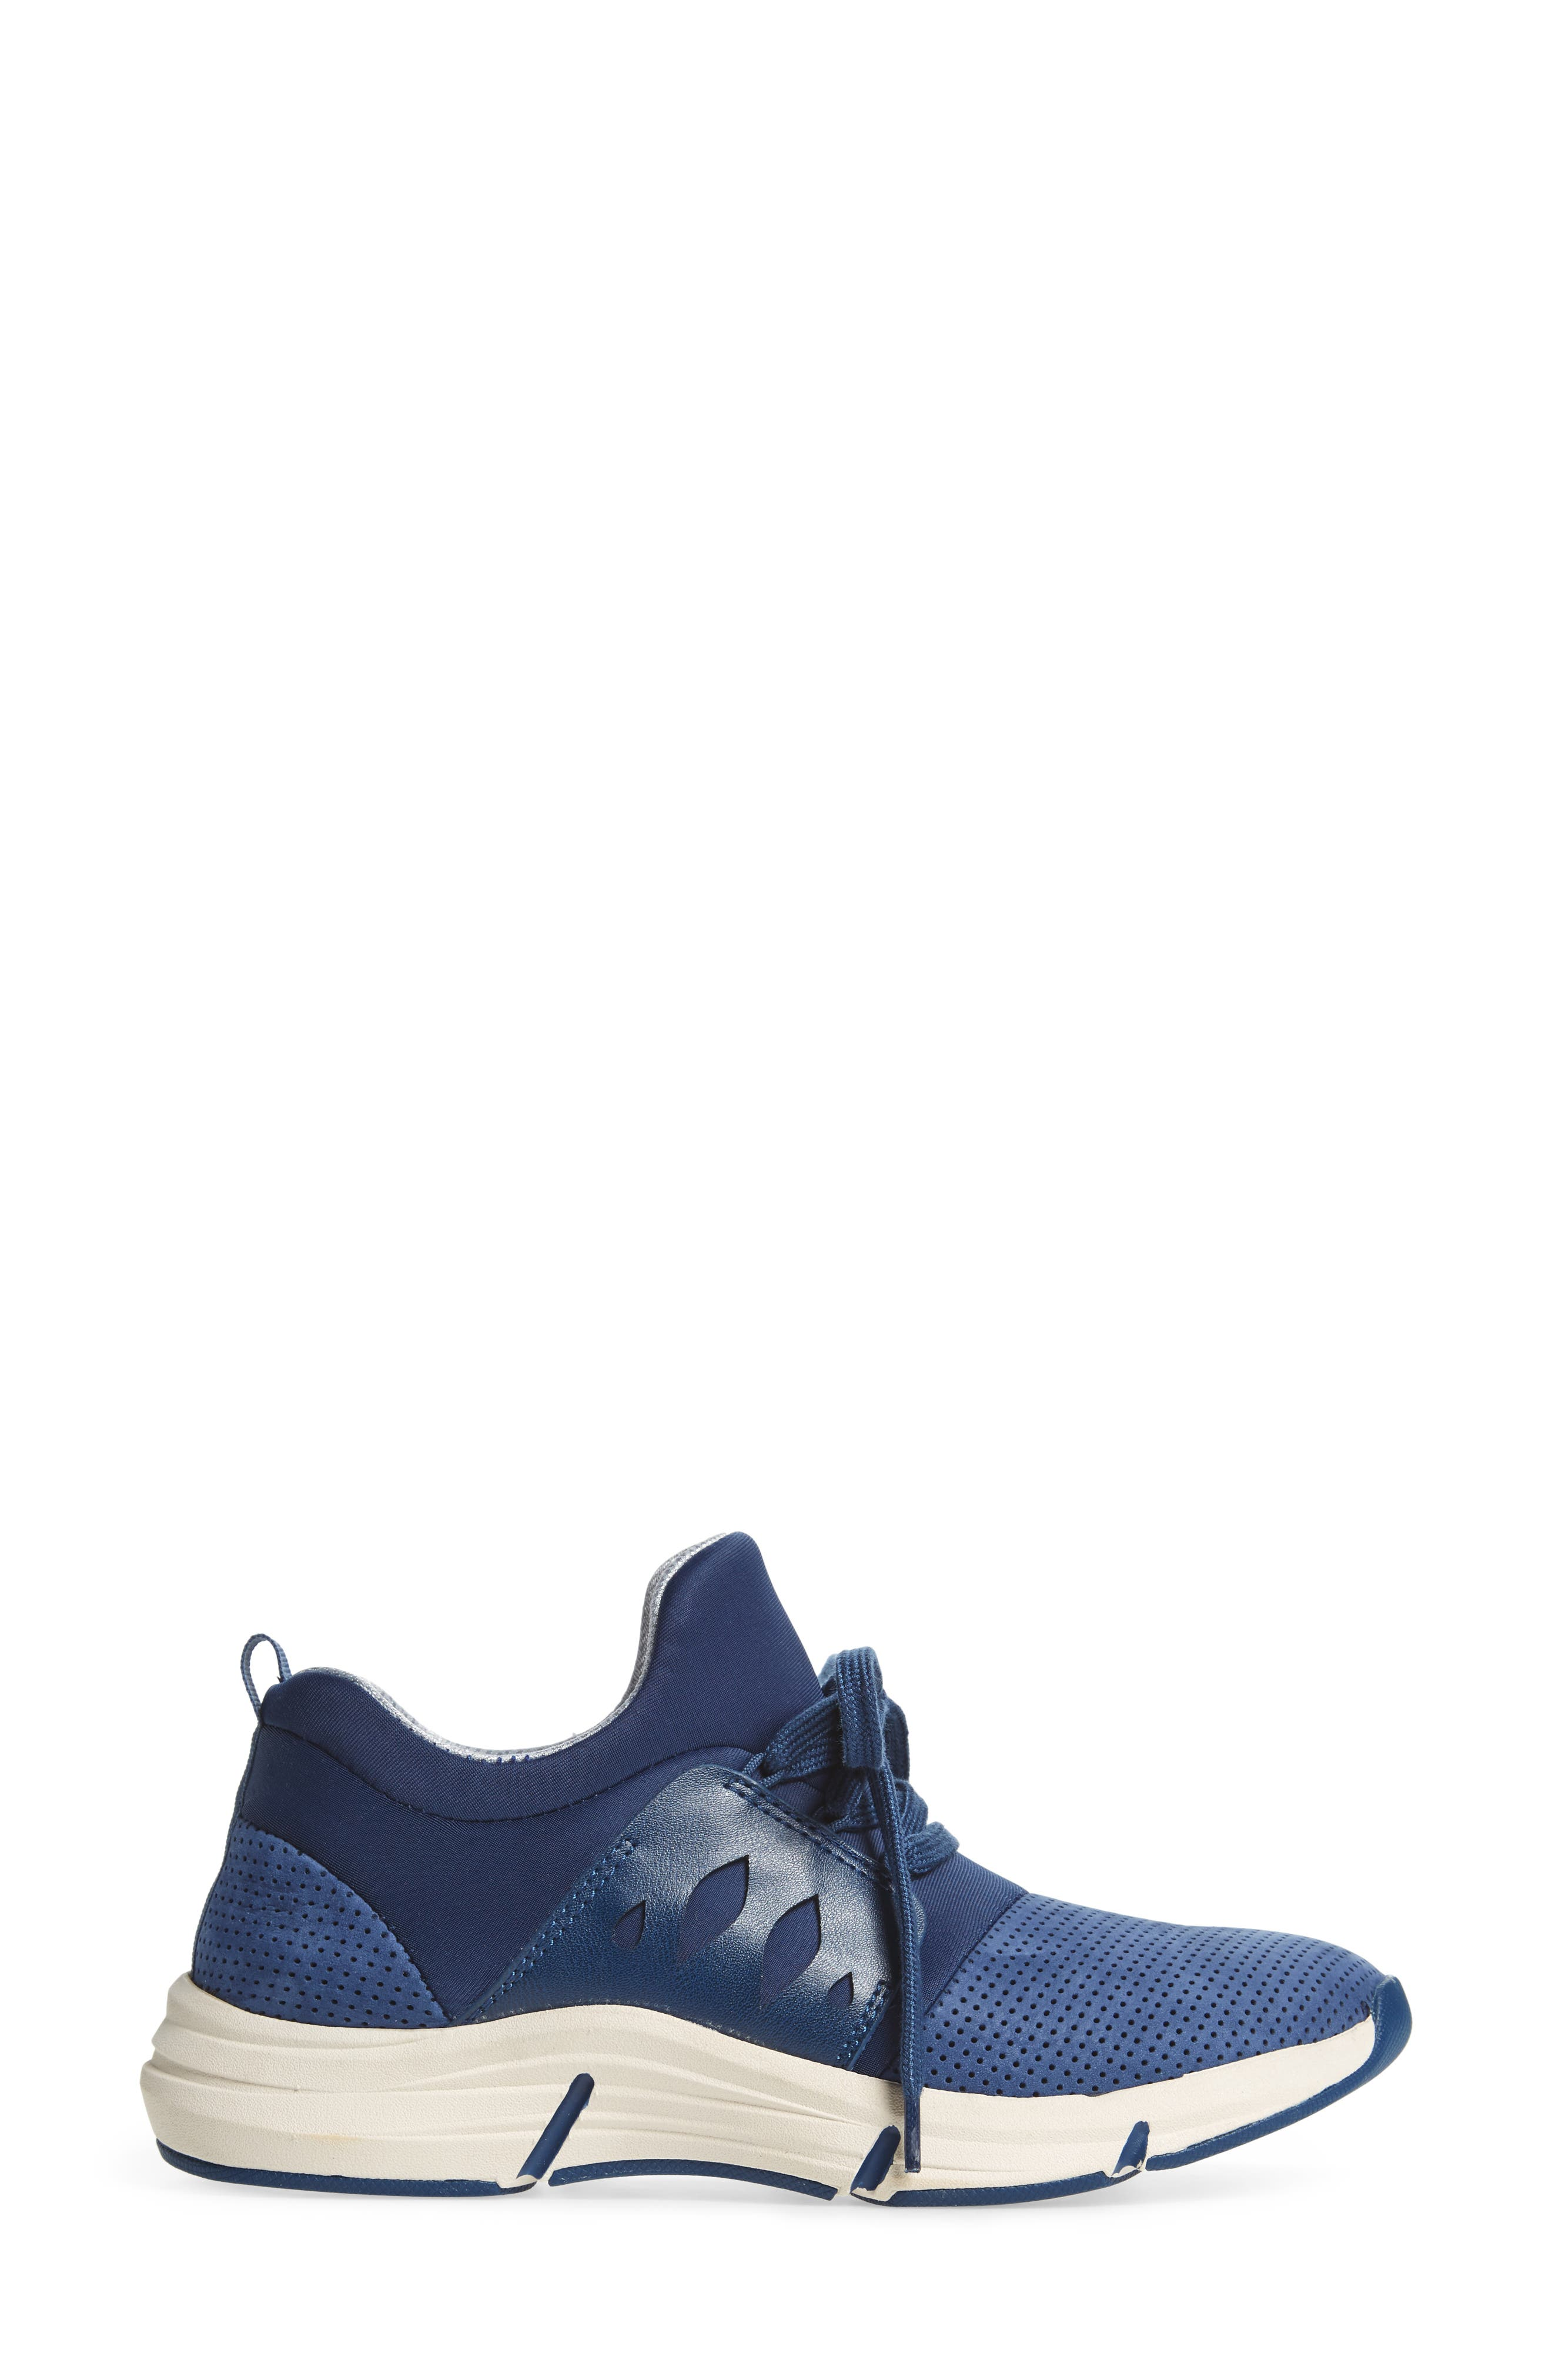 Ordell Sneaker,                             Alternate thumbnail 9, color,